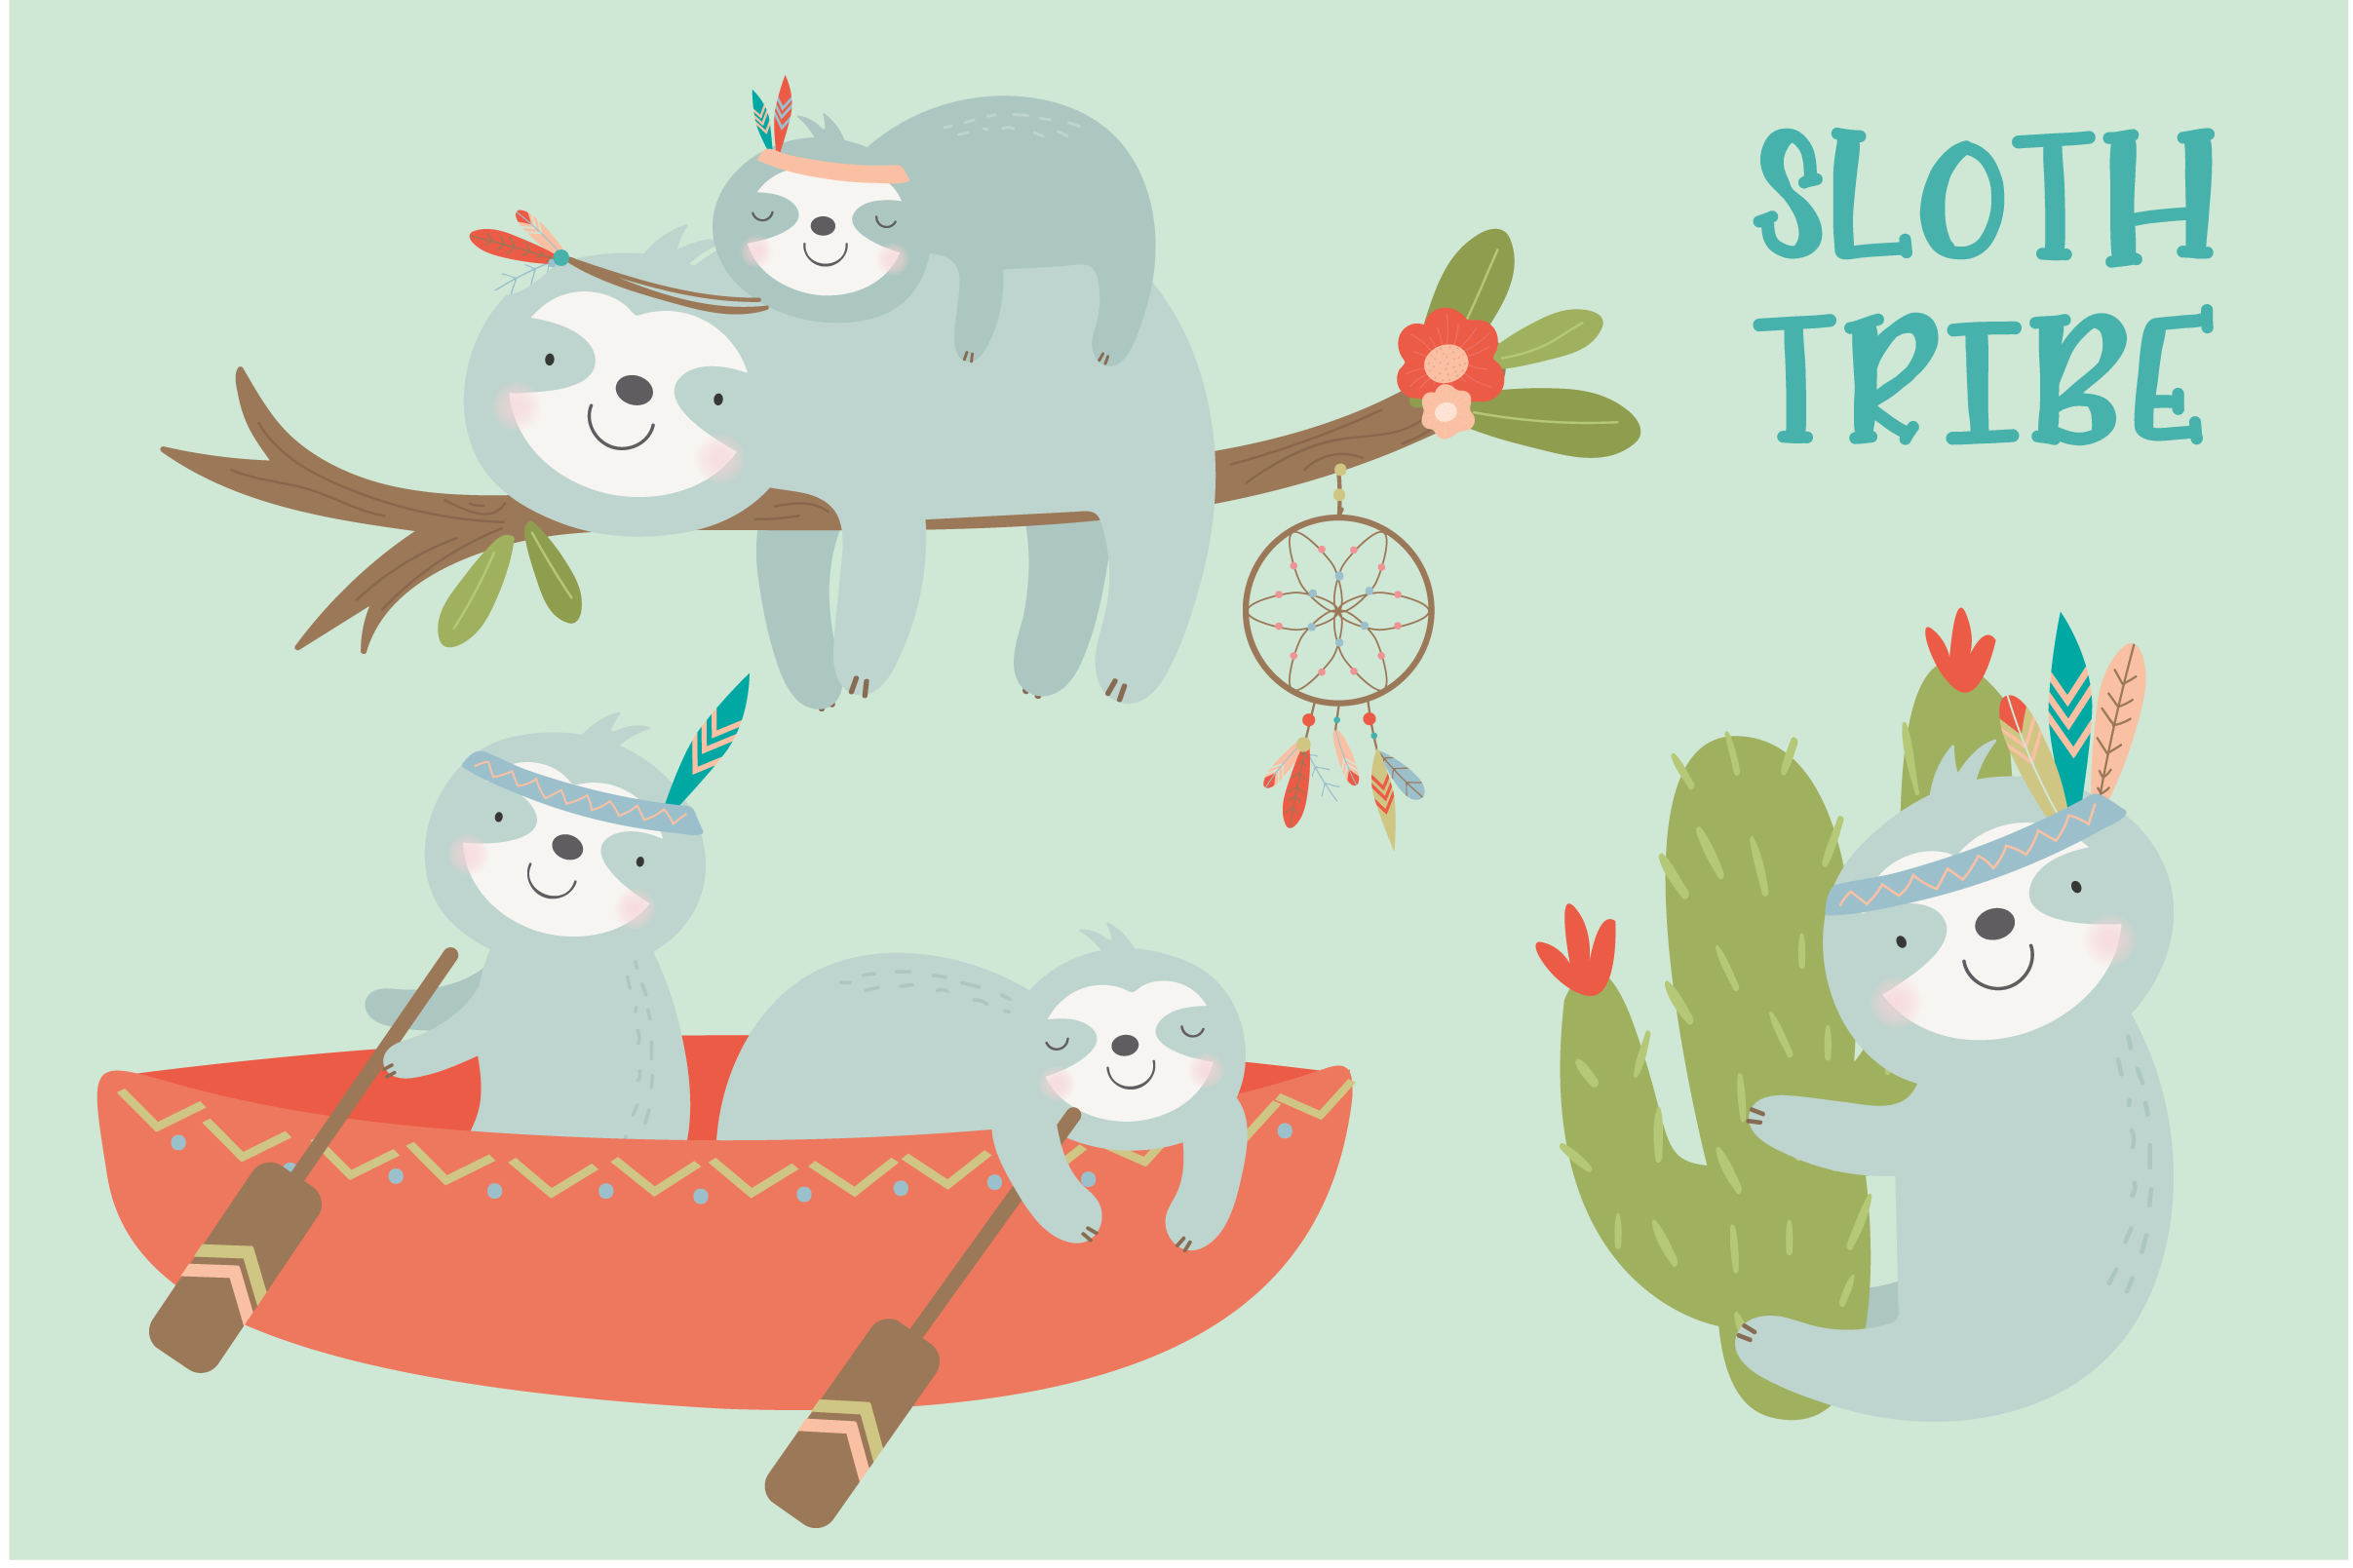 SLoth TRibe clipart and paper set example image 1